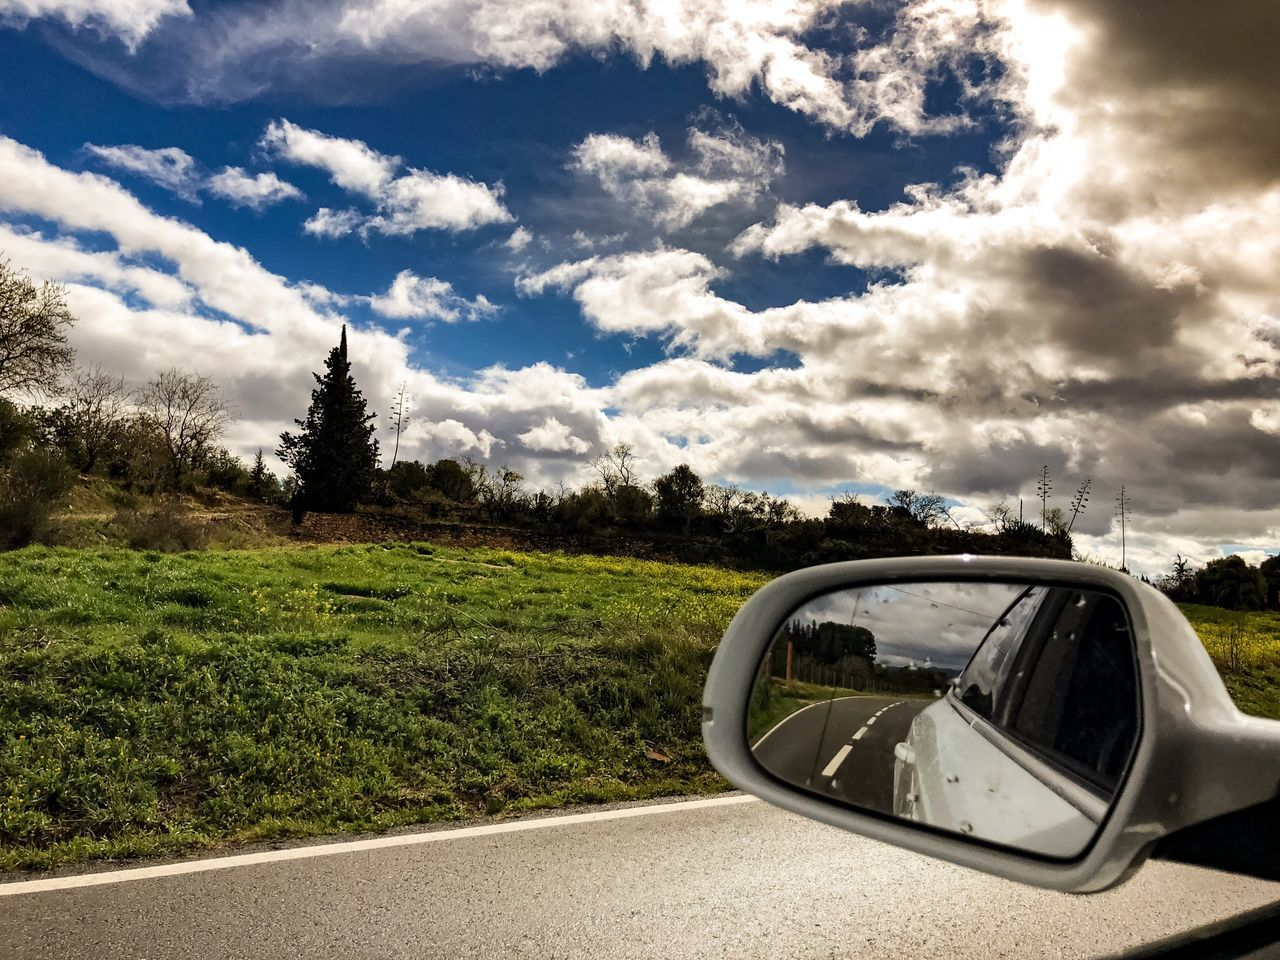 cloud - sky, sky, side-view mirror, transportation, car, road, day, land vehicle, grass, tree, nature, no people, vehicle mirror, mode of transport, outdoors, landscape, growth, beauty in nature